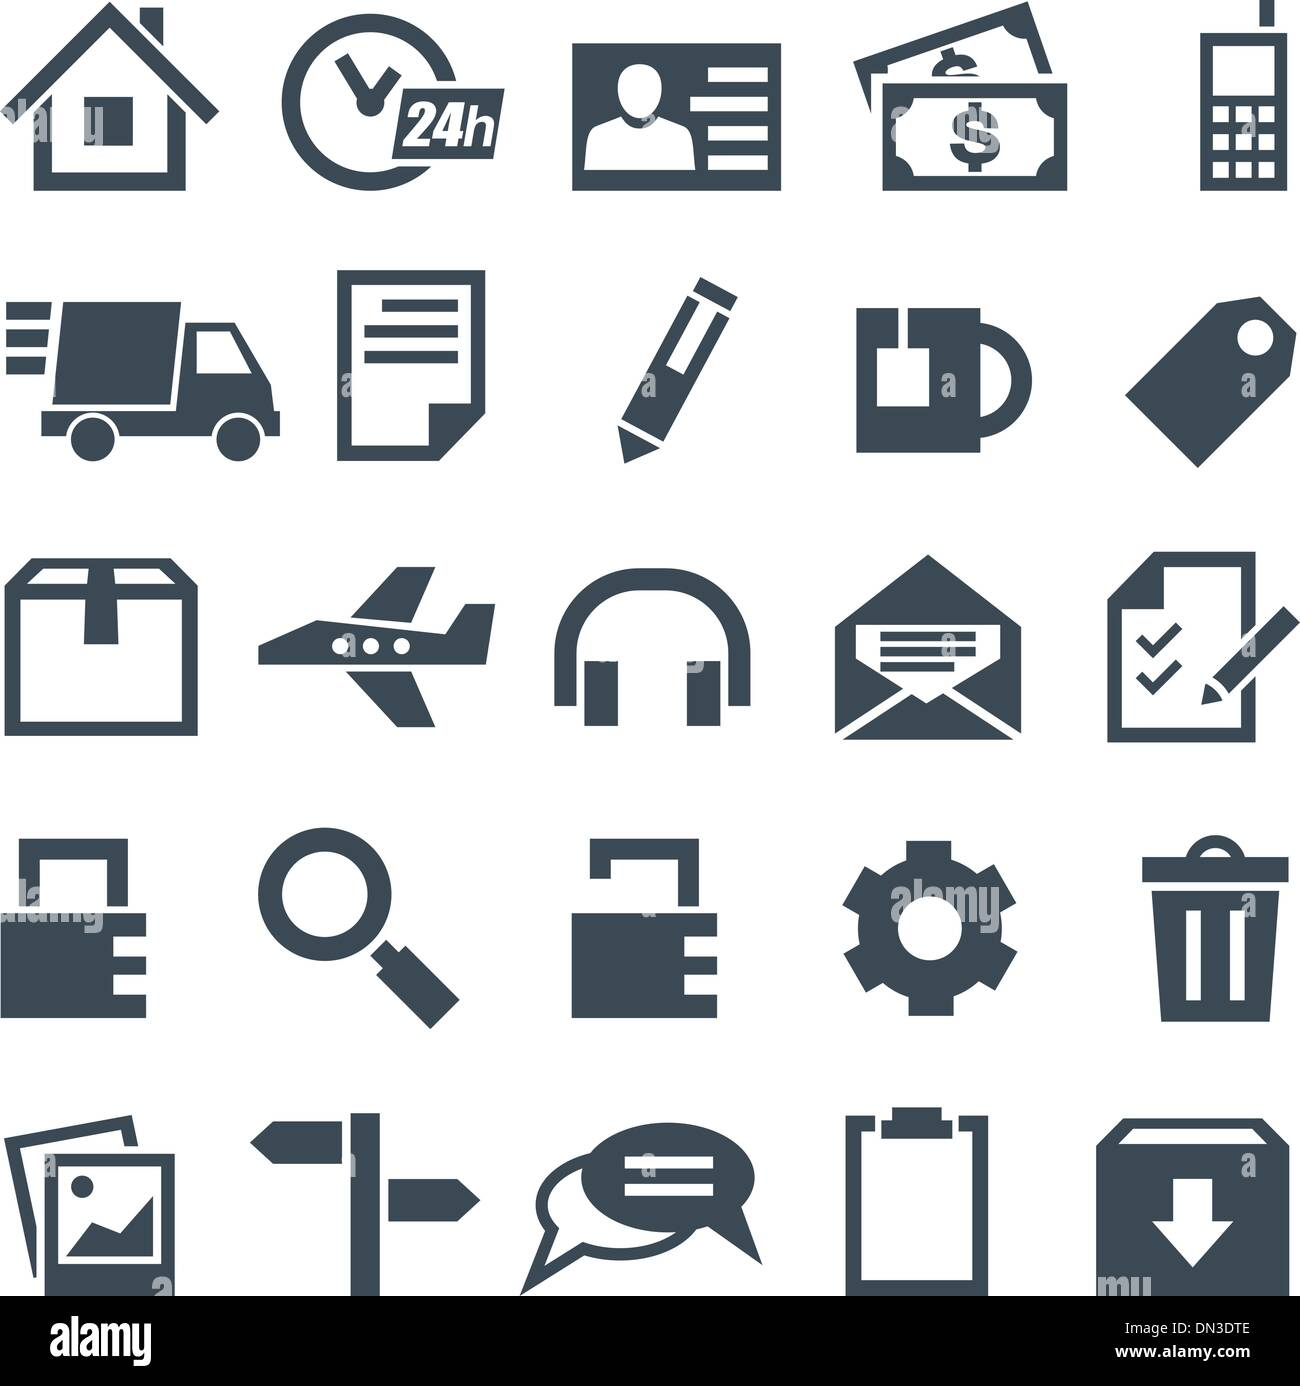 Universal set of icons for mobile applications and web sites. - Stock Image